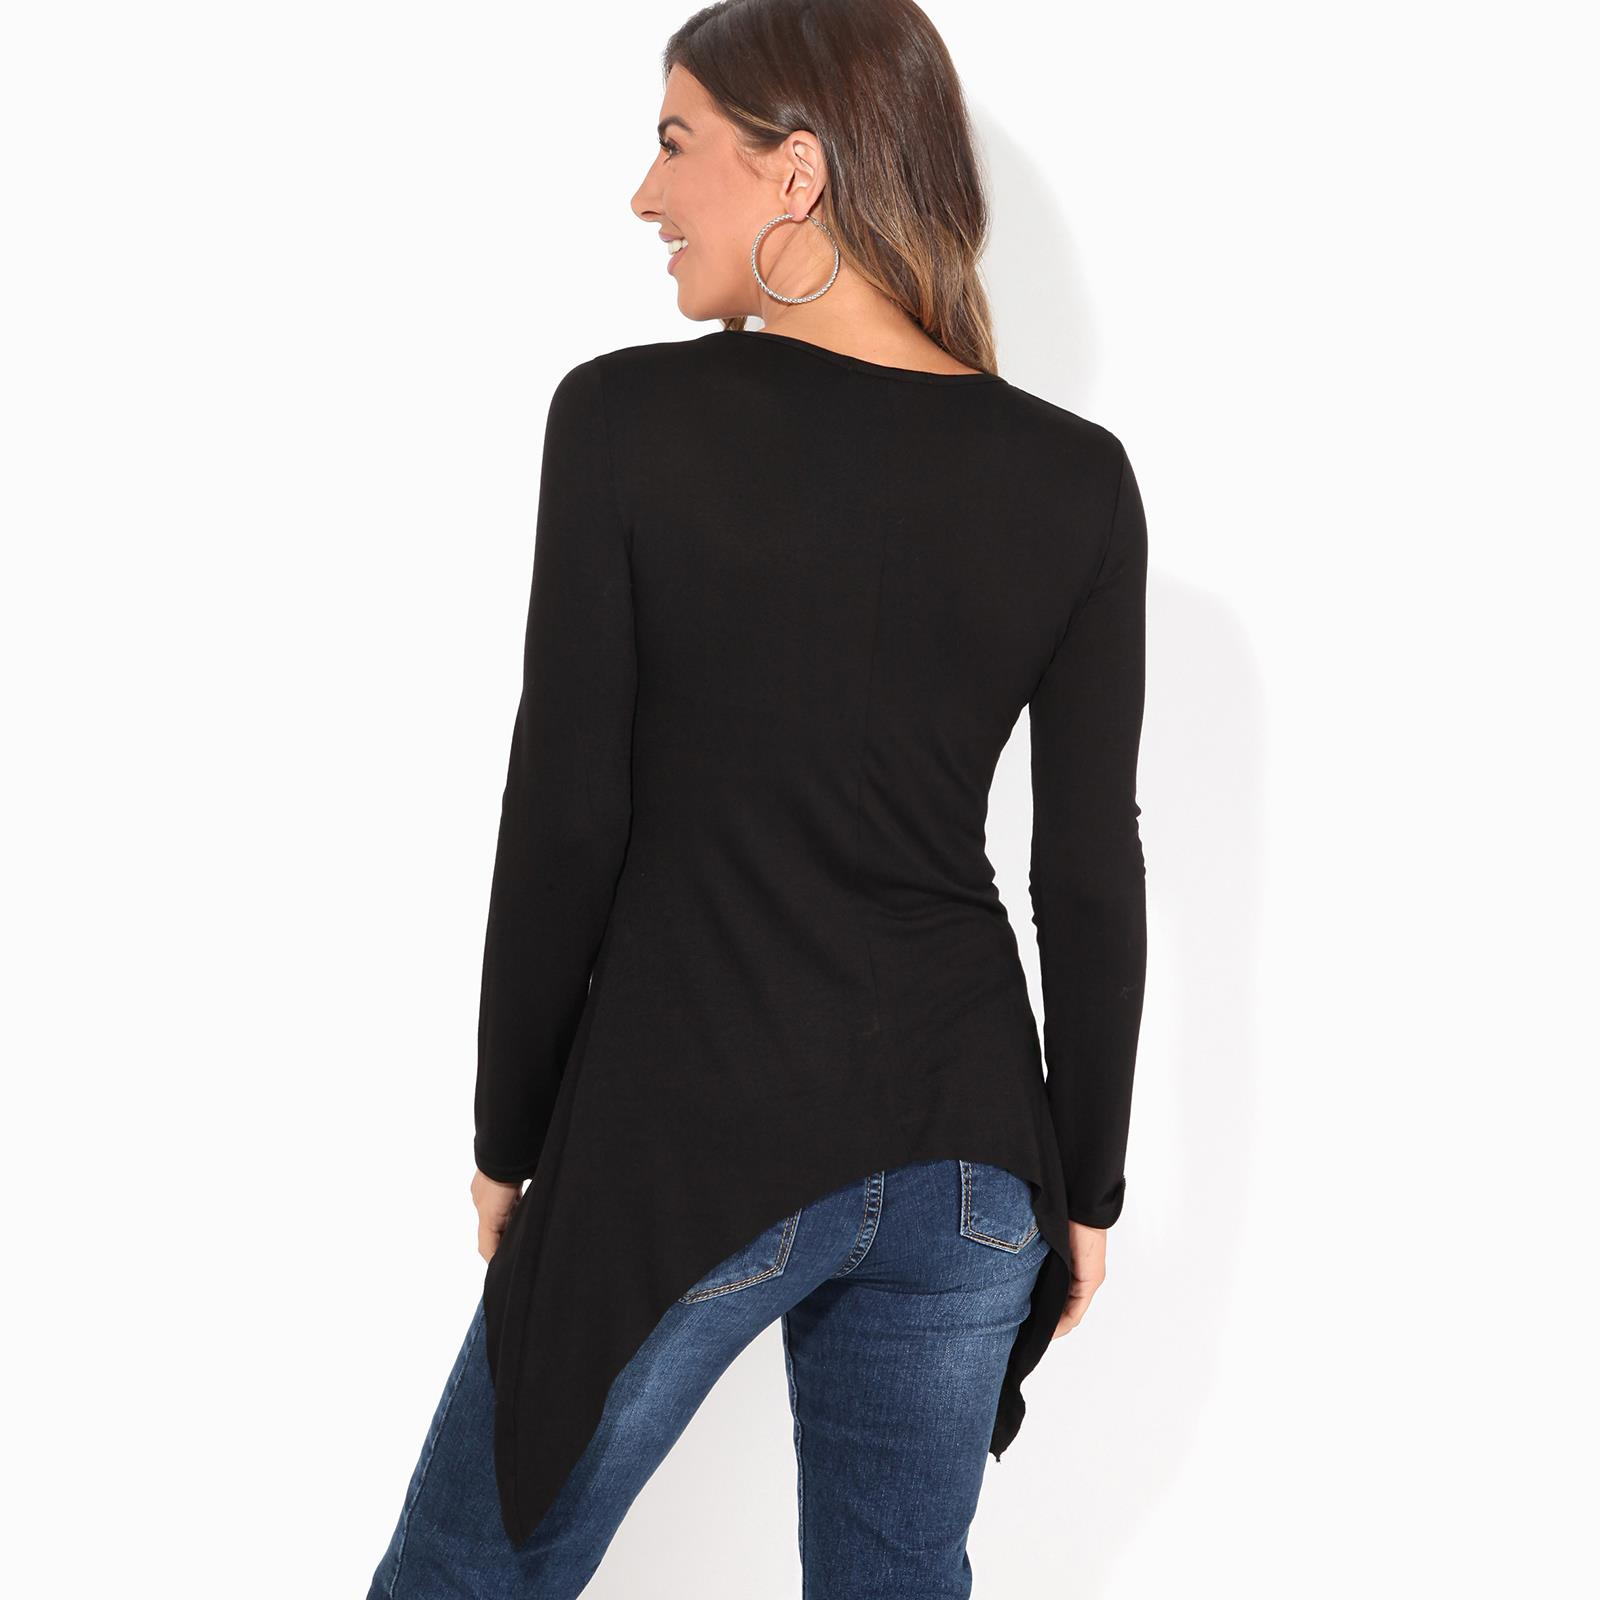 Womens-Ladies-Scoop-Neck-Blouse-Longline-T-Shirt-Flared-Top-Pleated-Long-Sleeve thumbnail 3